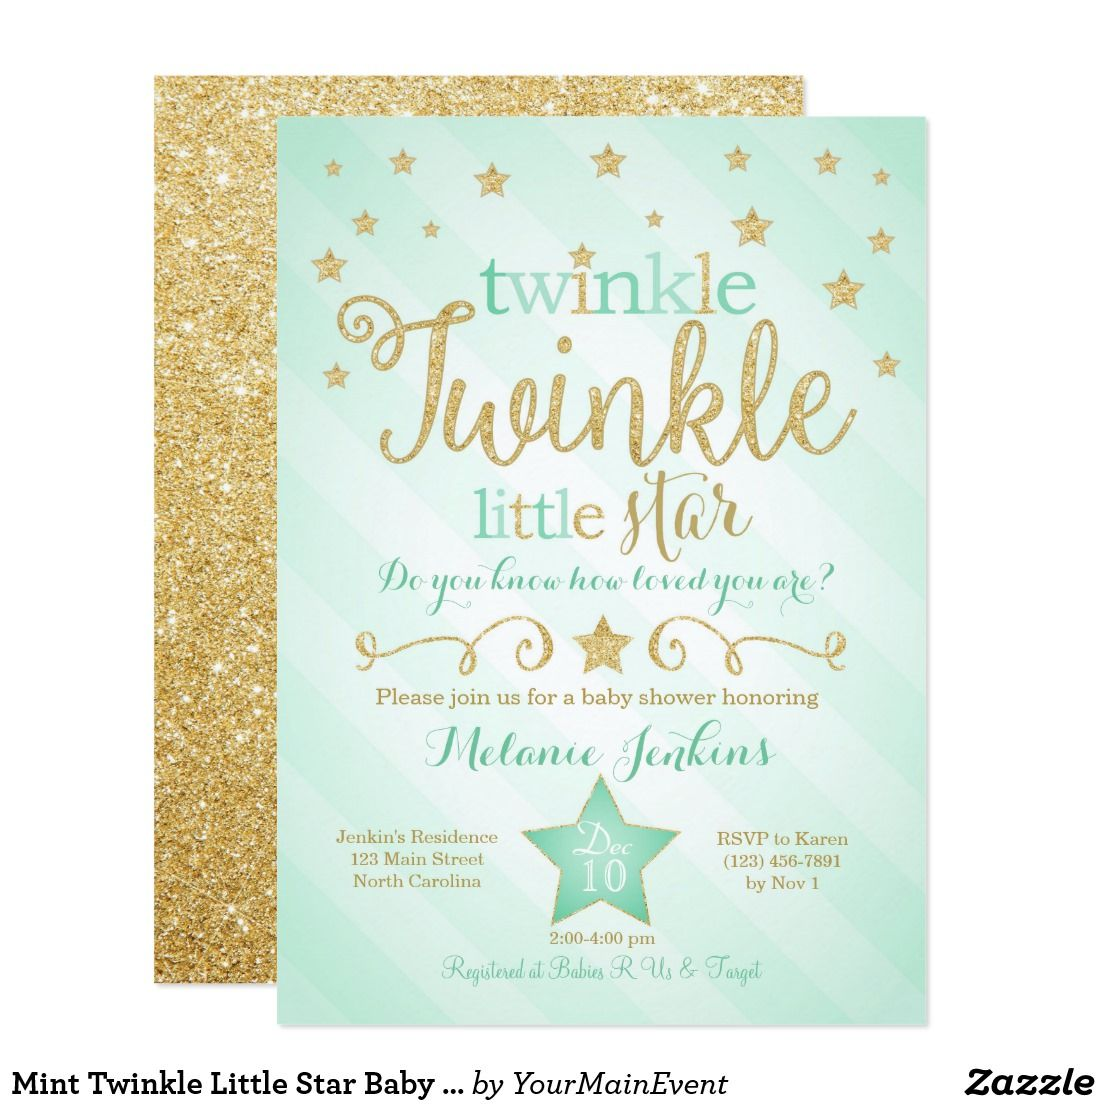 Mint Twinkle Little Star Baby Shower Invitation Zazzle Com